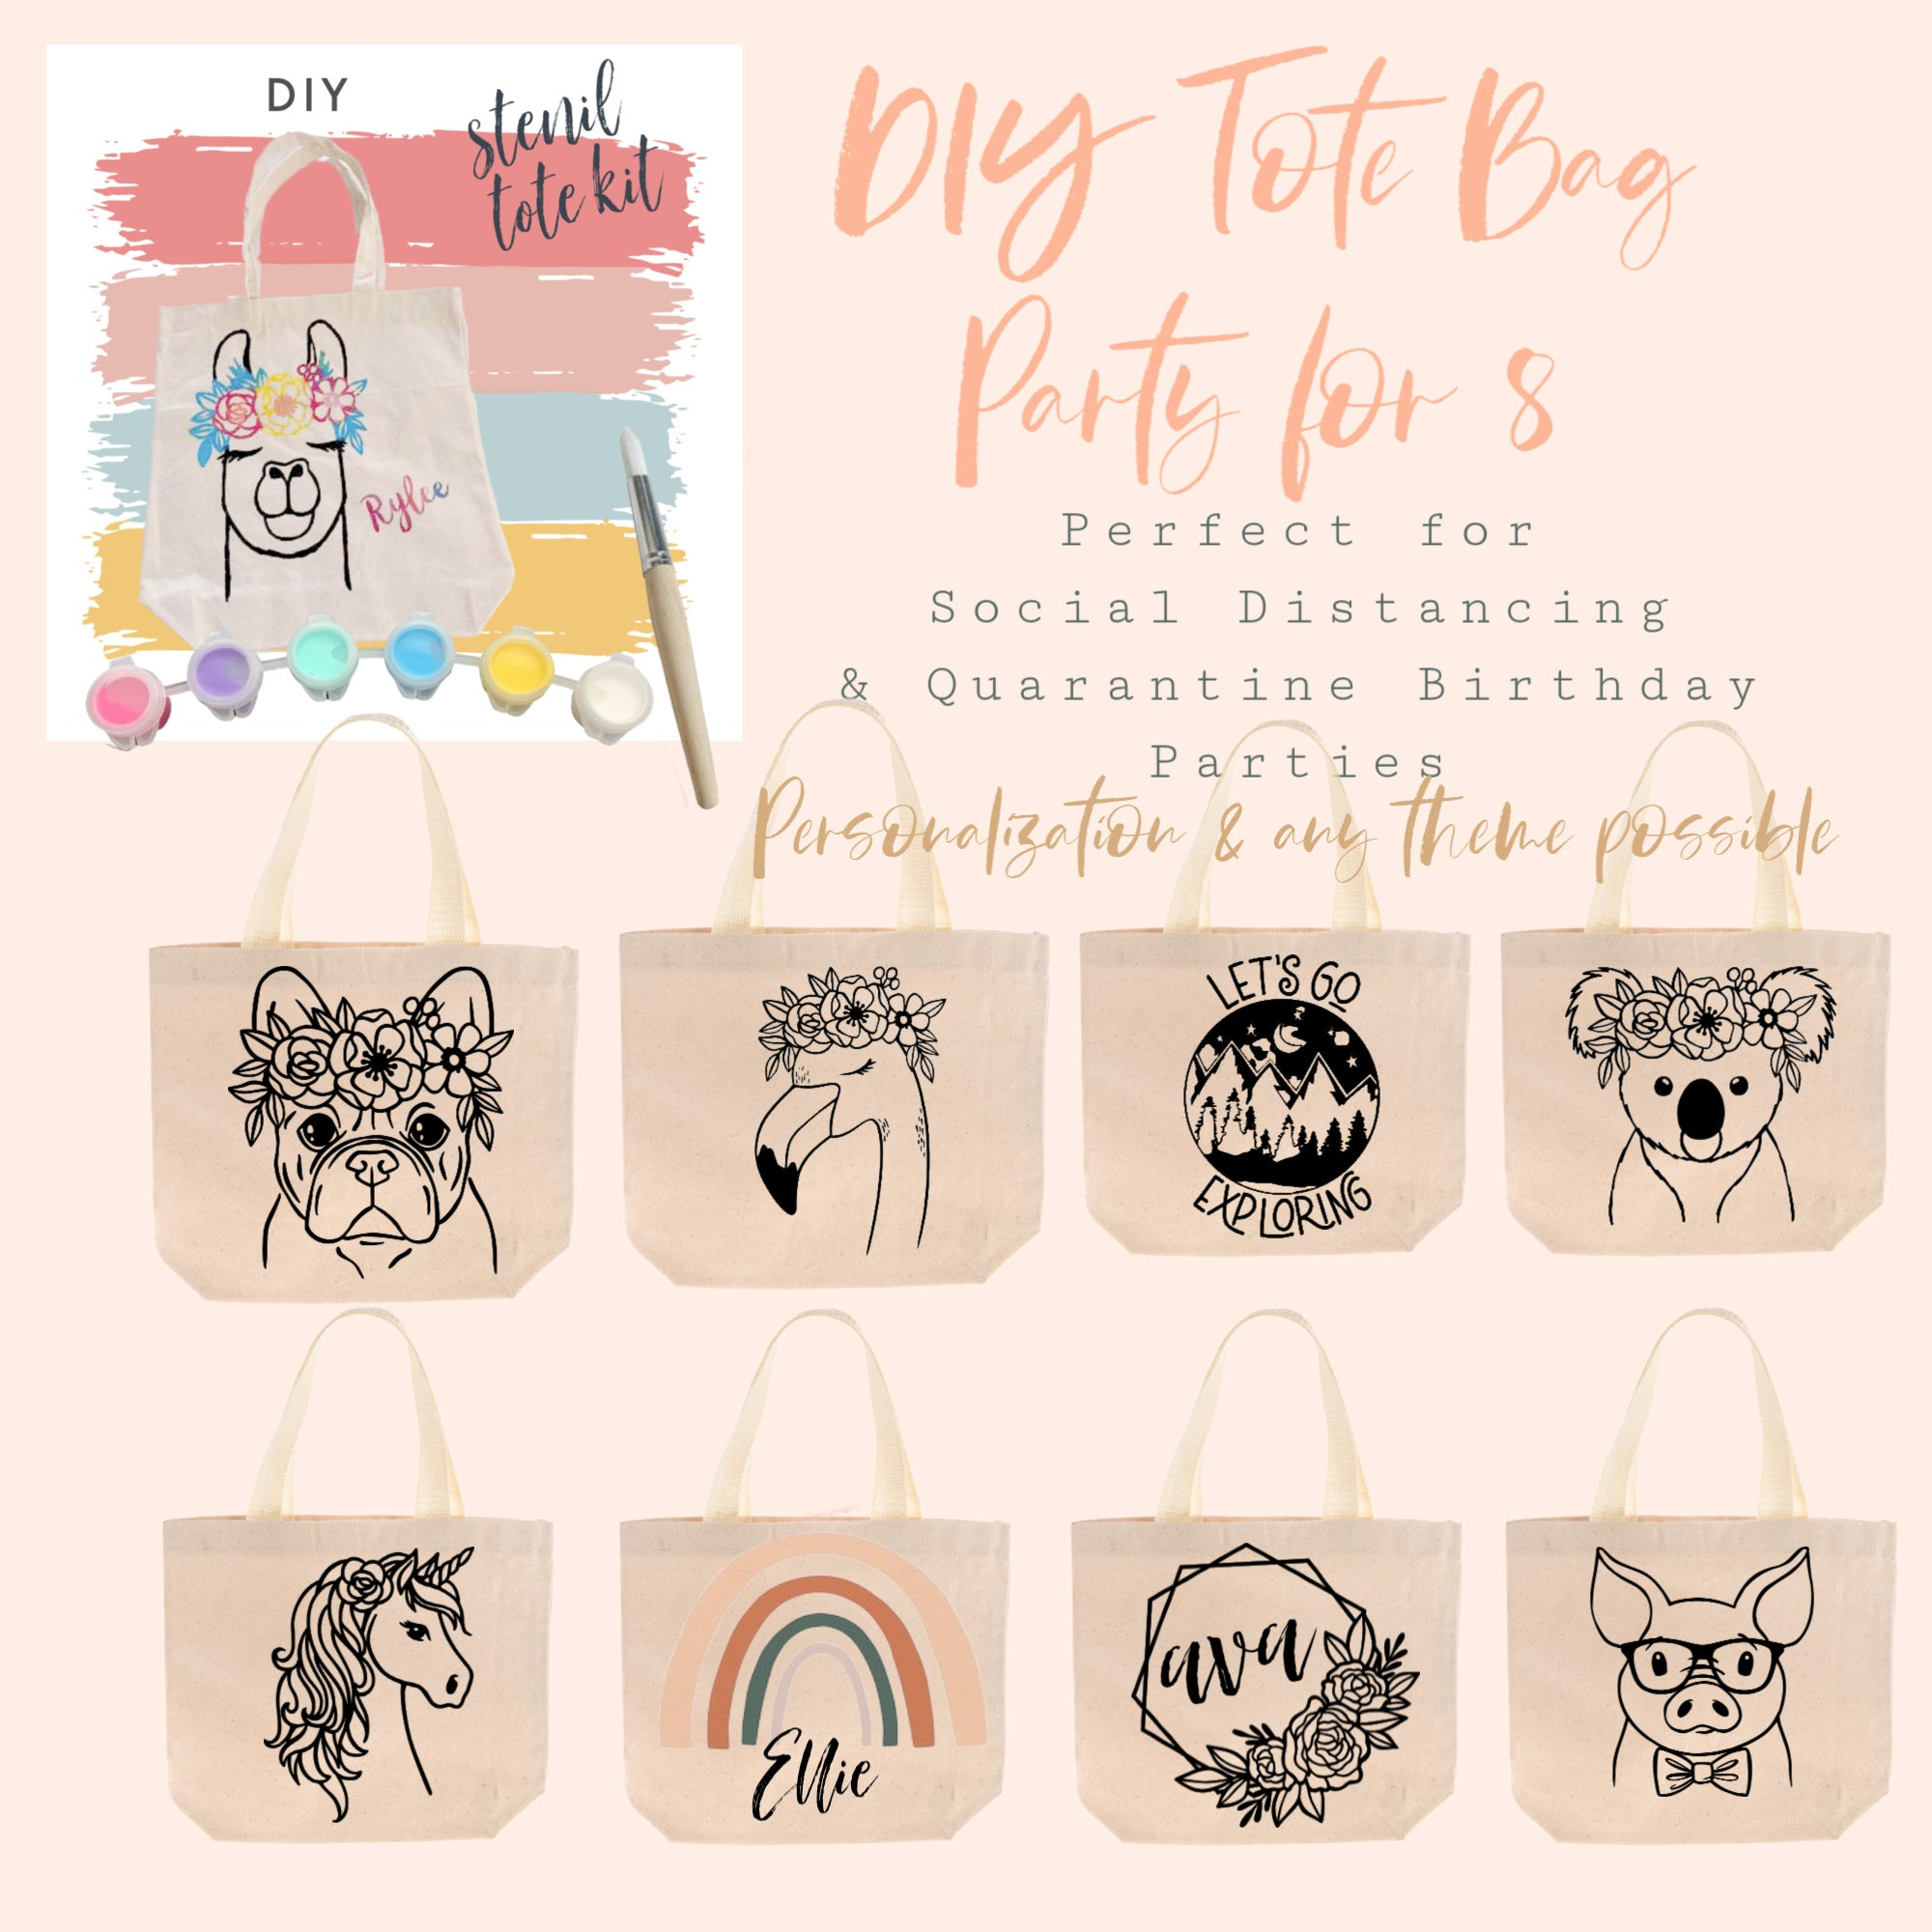 Party in a Box | DIY Kit | Tote Bag Party for 8